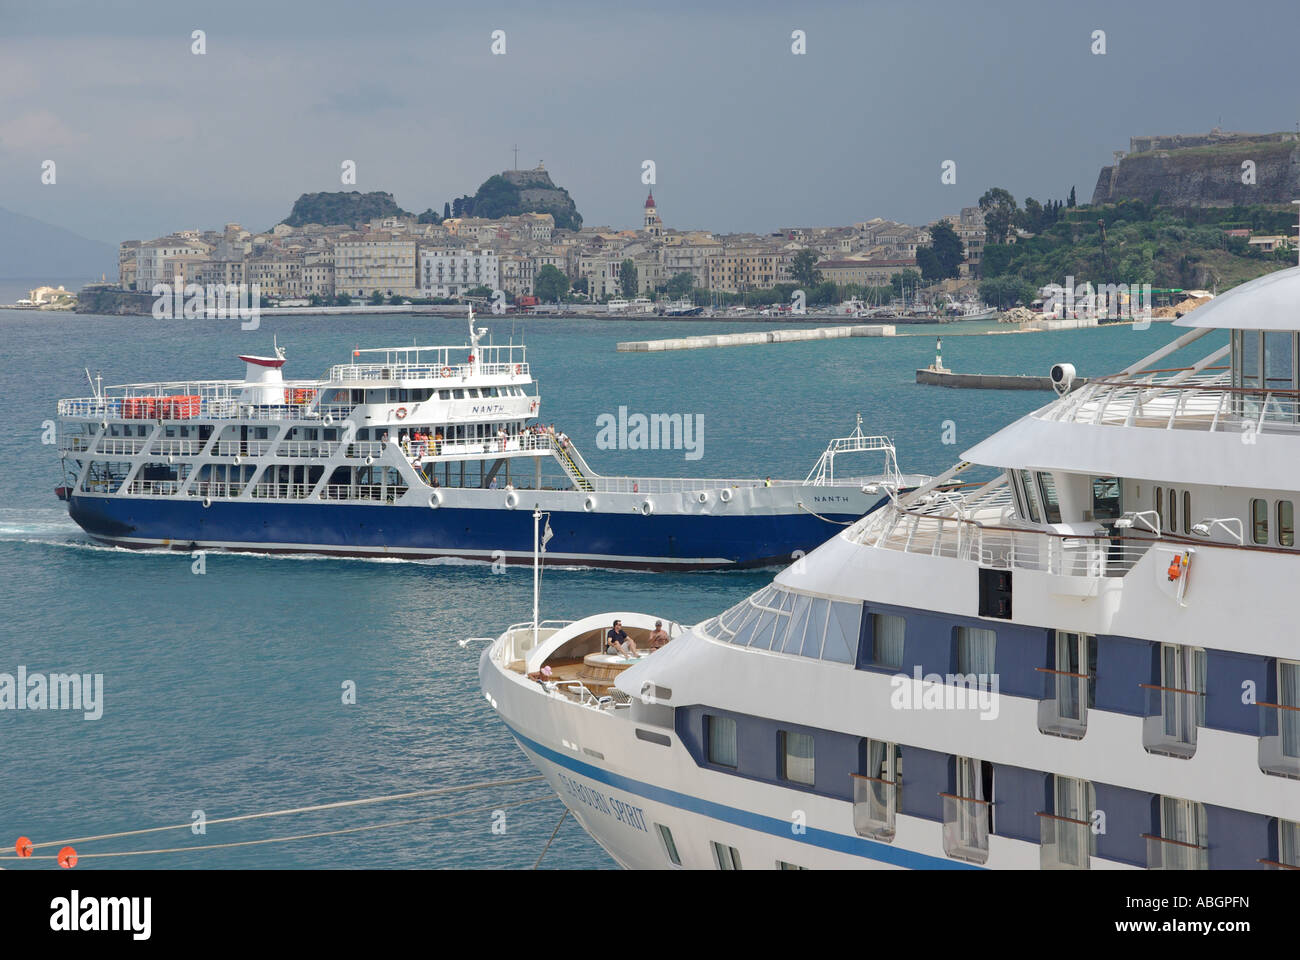 Corfu Greek island Corfu Town new port with cruise ship at moorings and views towards the Old Town Fort ferry boat Stock Photo